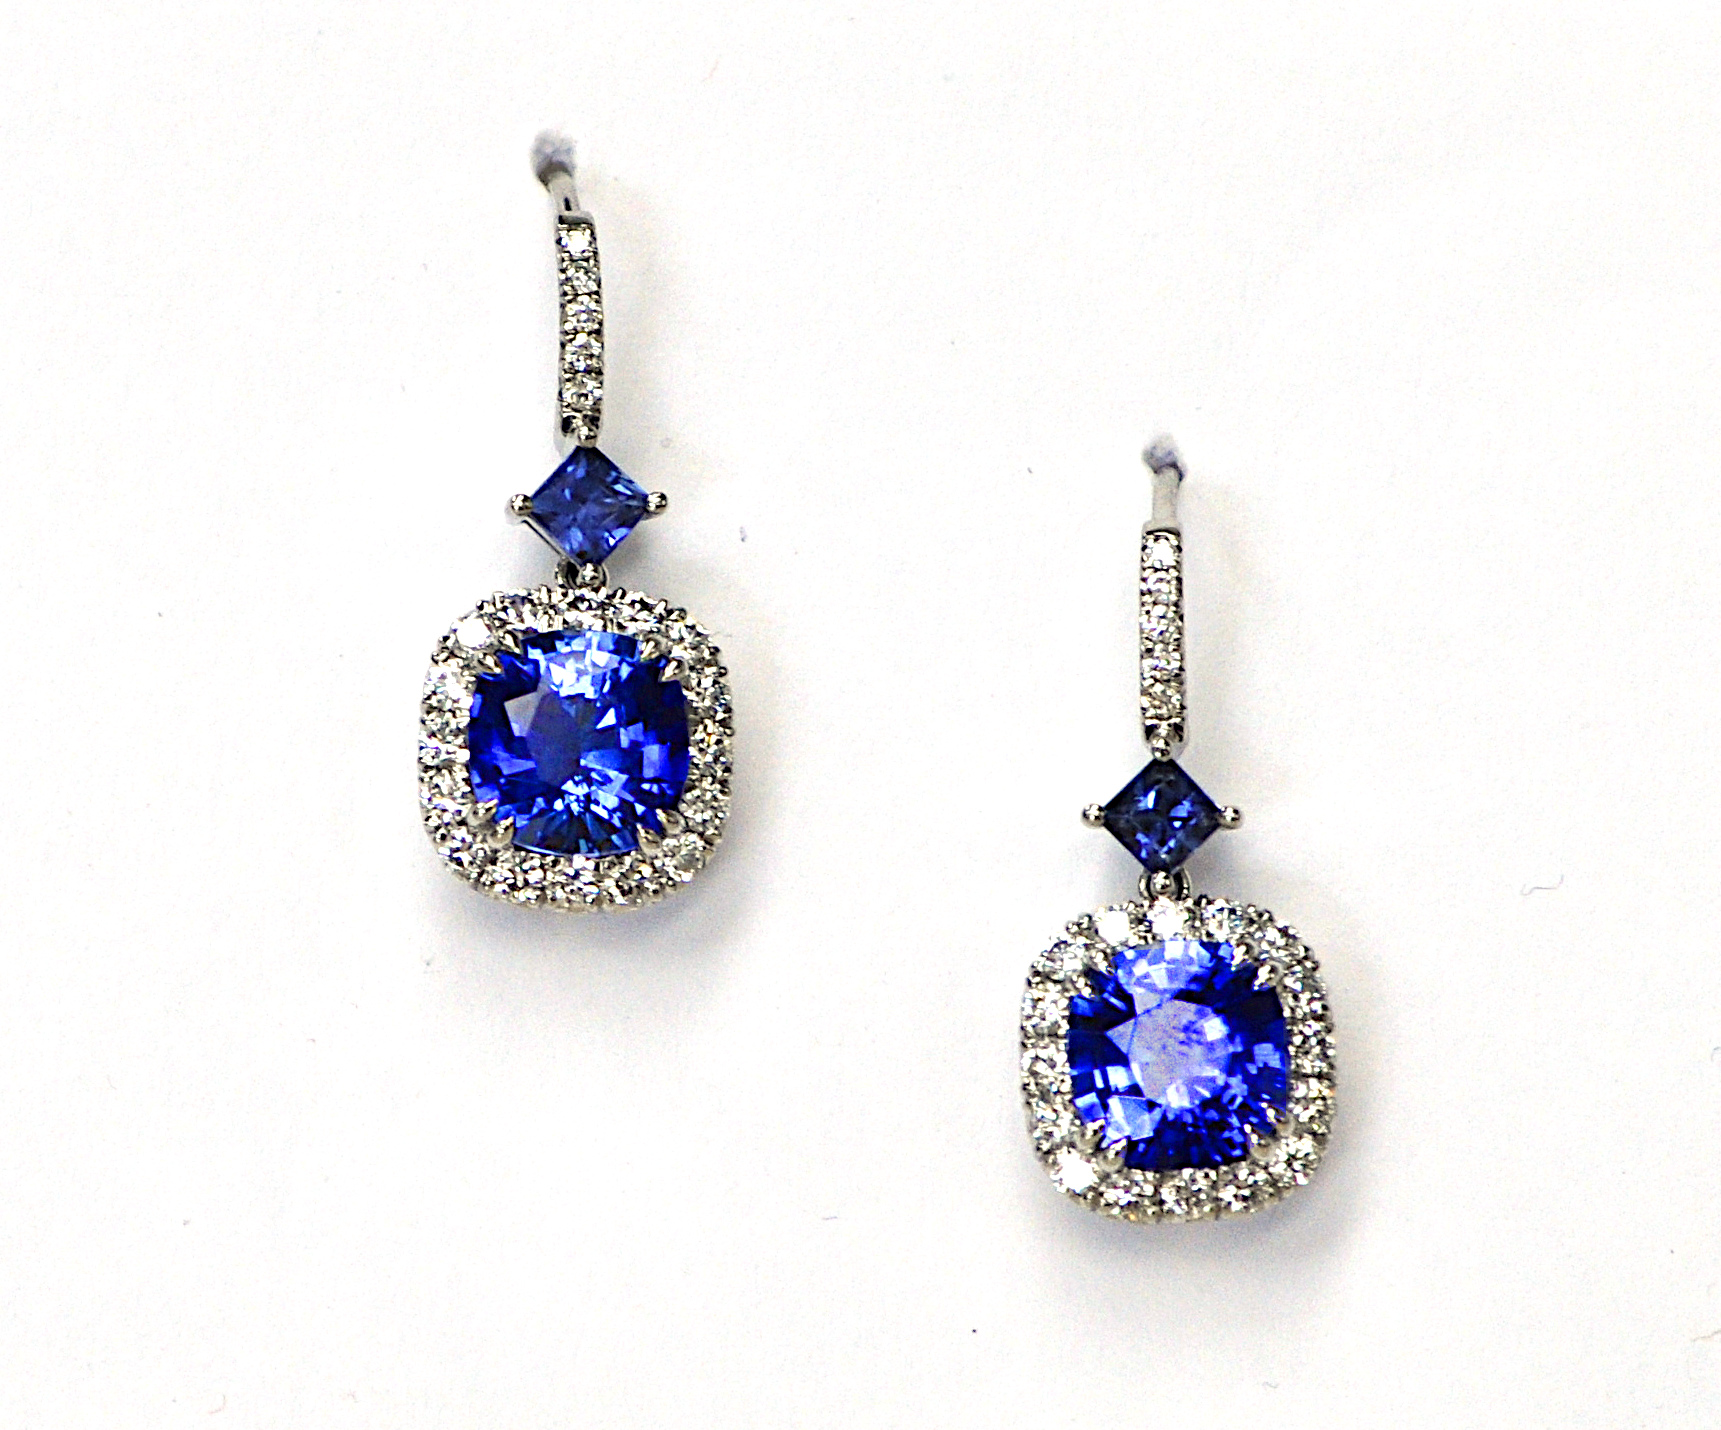 4ct Sapphire & Diamond Earrings